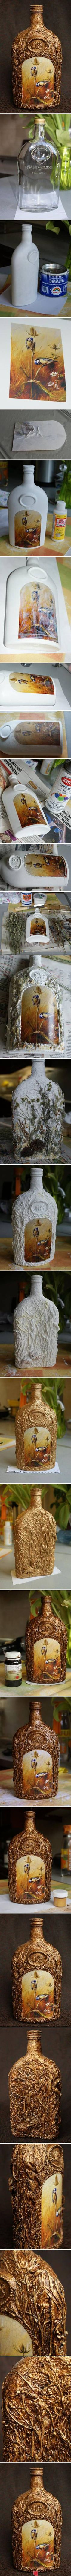 I wish there were REAL instructions and not just a sequence of photos for this  awesome jar.